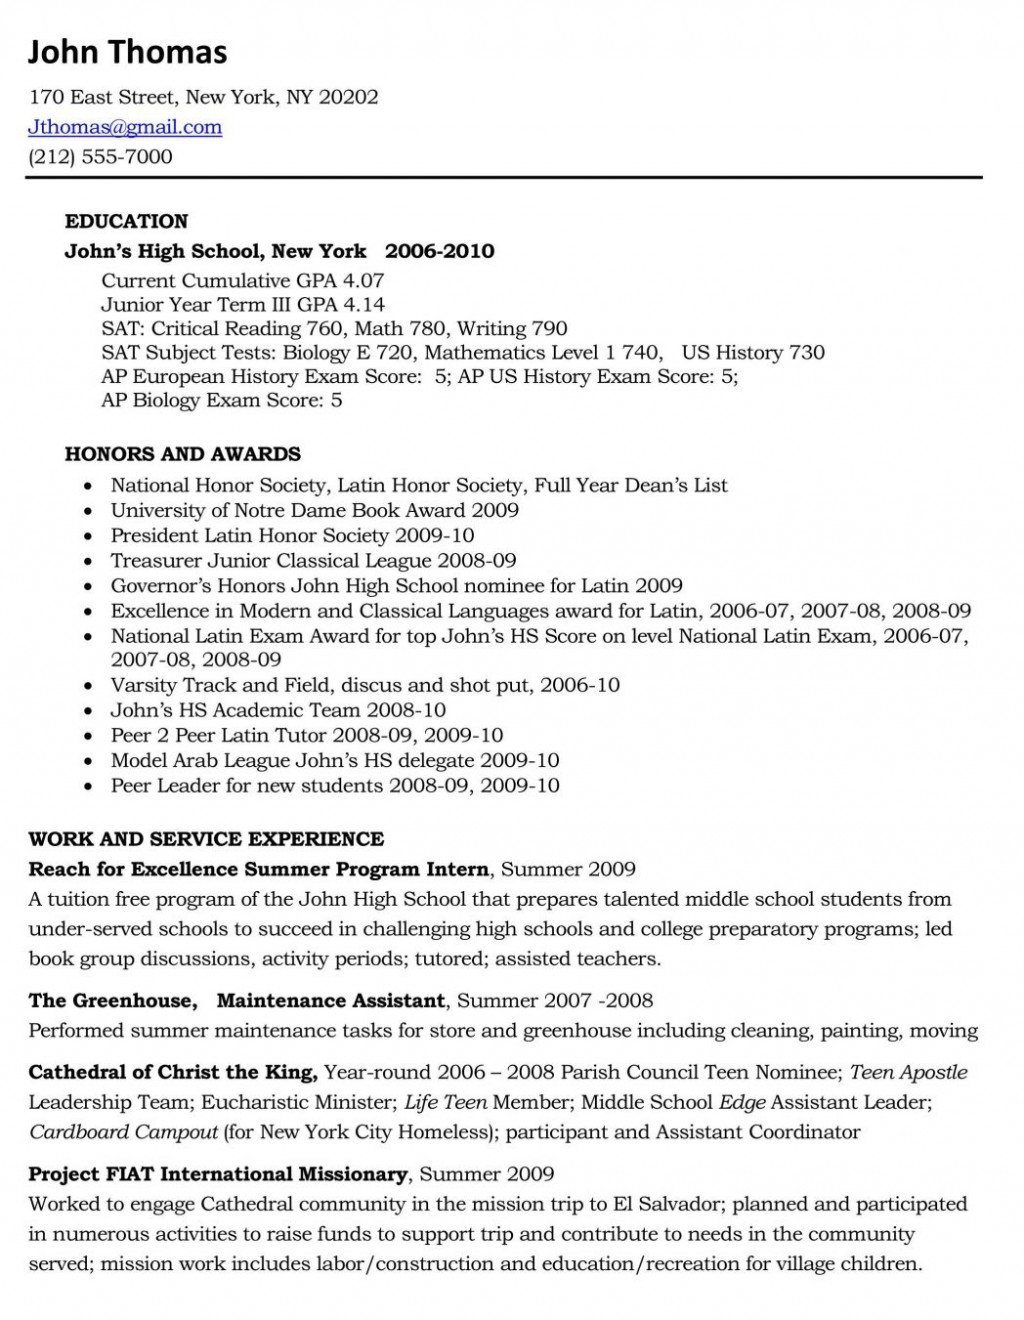 015 Mobile Phones Should Banned In Schools Essay Example On Texting Resume Jpg Cell Cellphones Schoolment Not Allowed Pdf Introduction Unique Be Argumentative Large